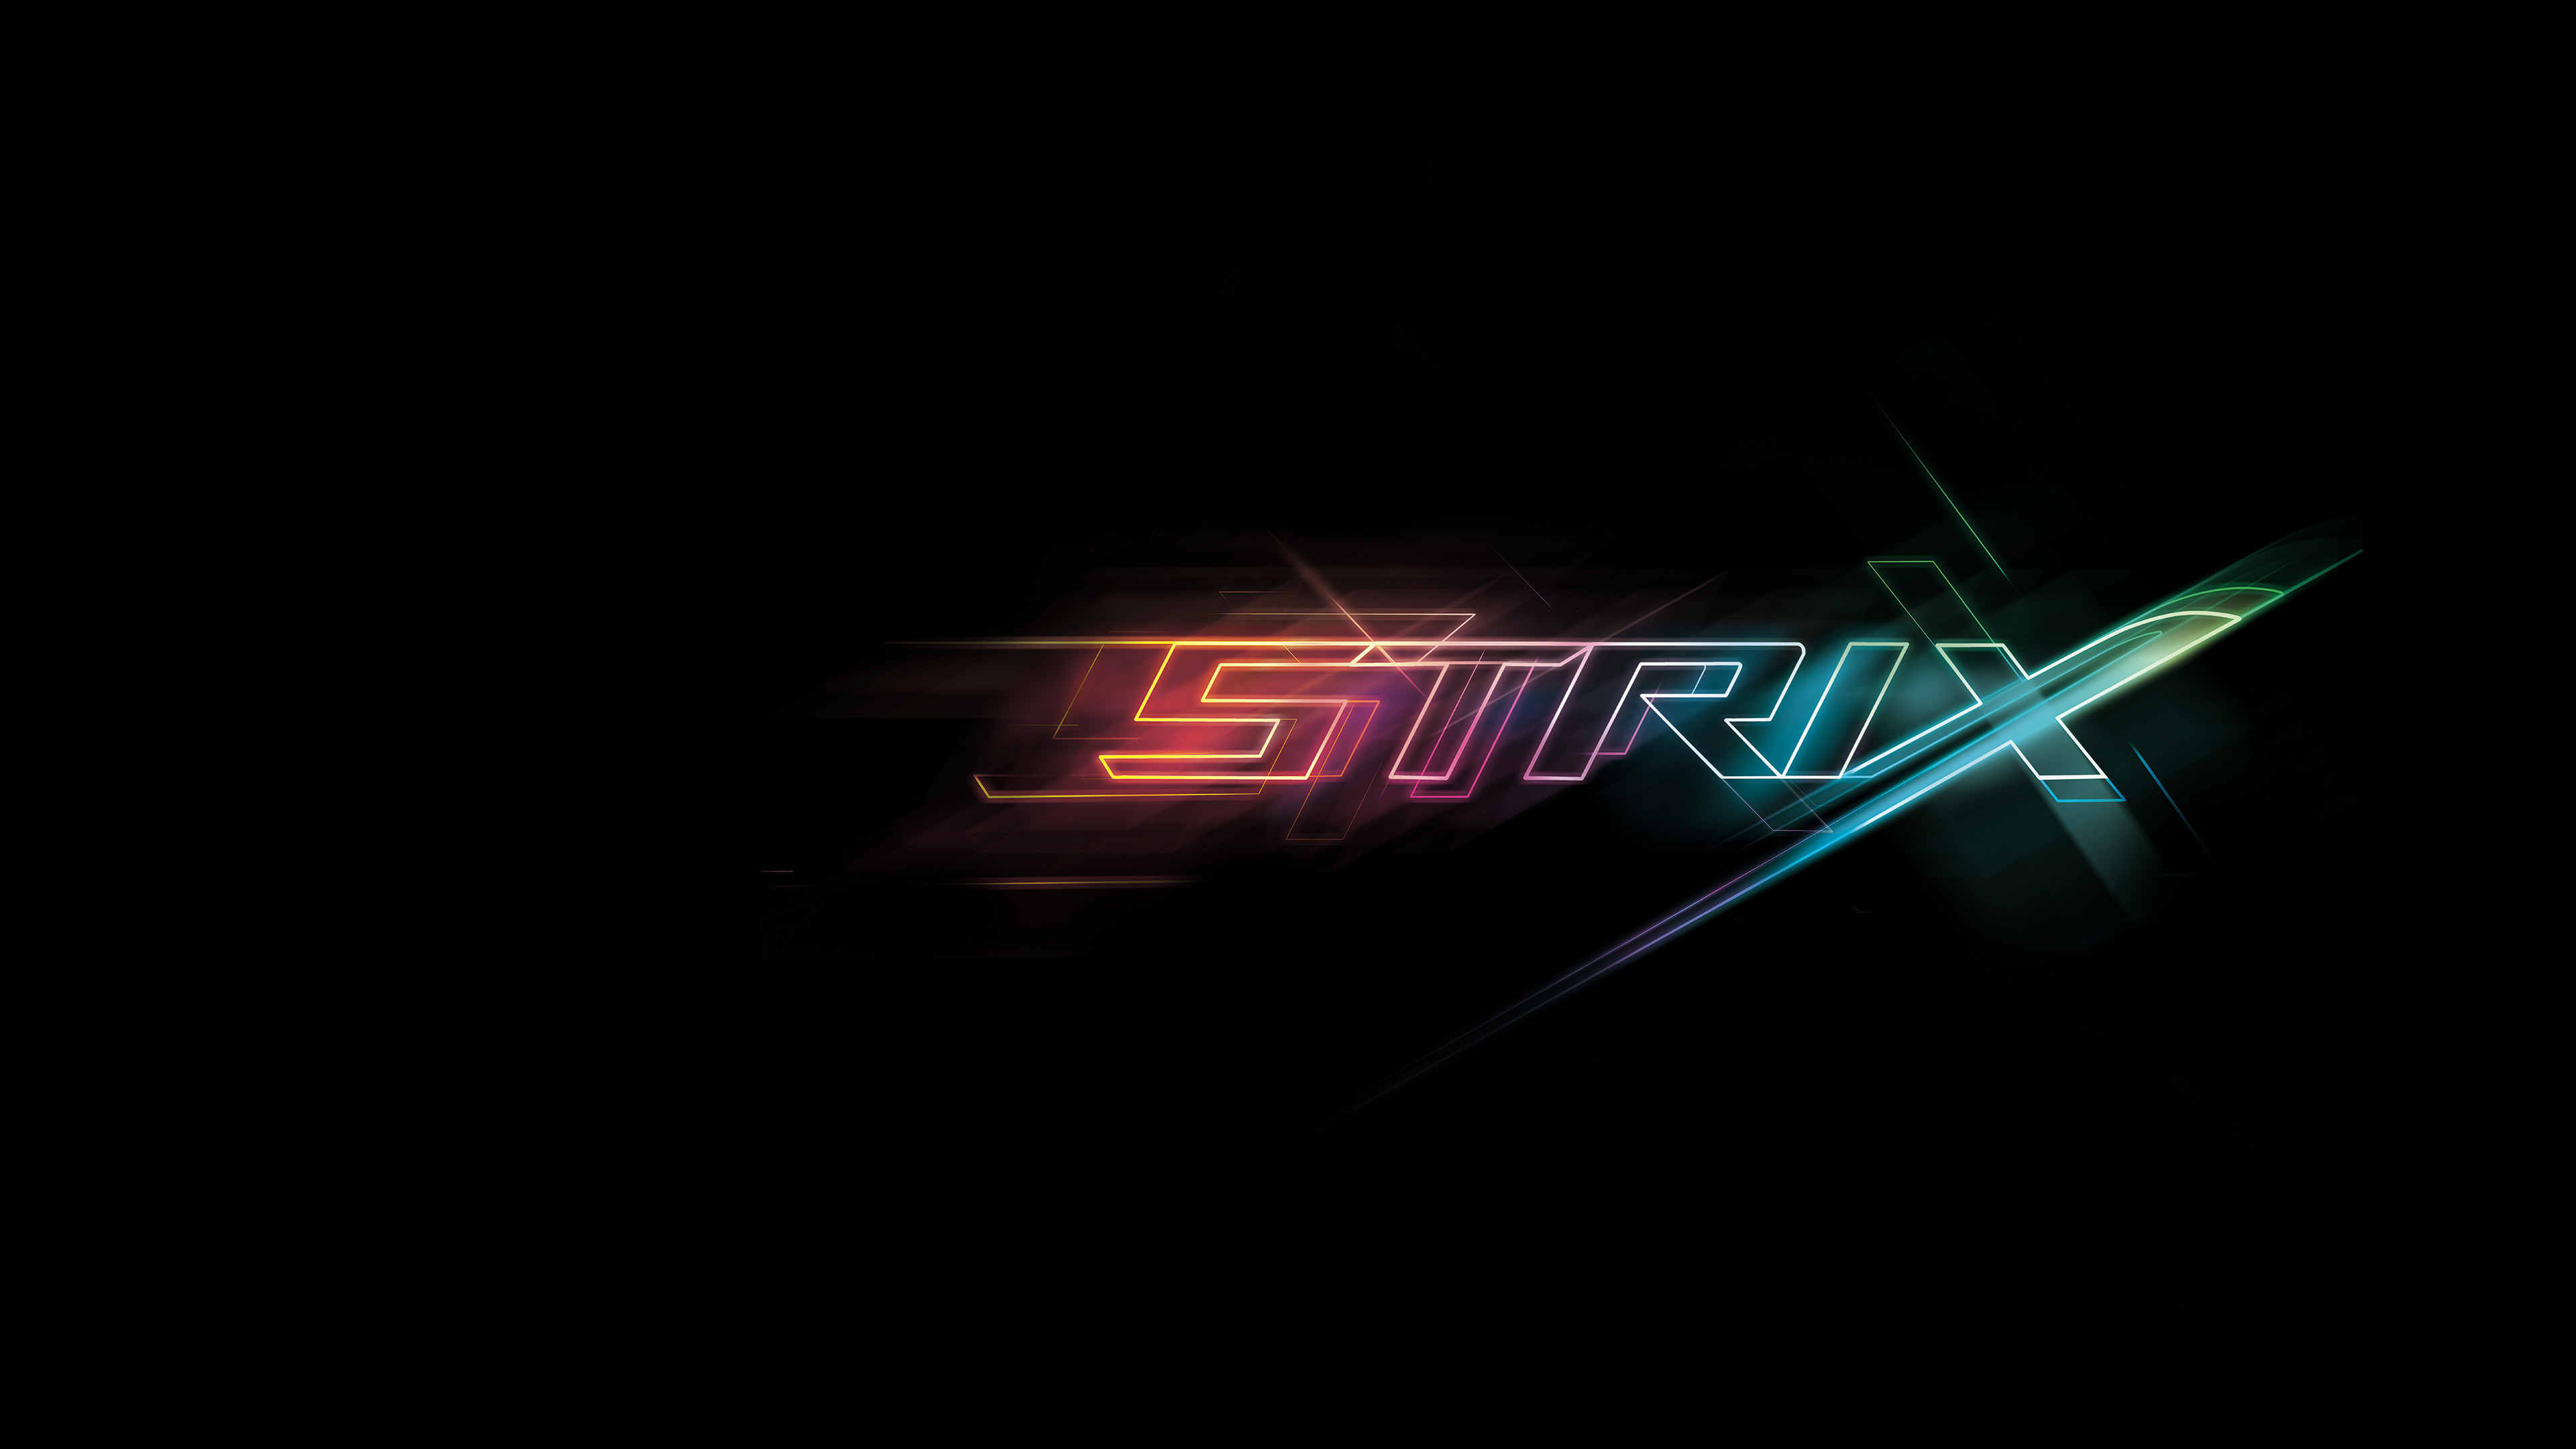 Strix wallpapers 73 pictures - Asus x series wallpaper hd ...